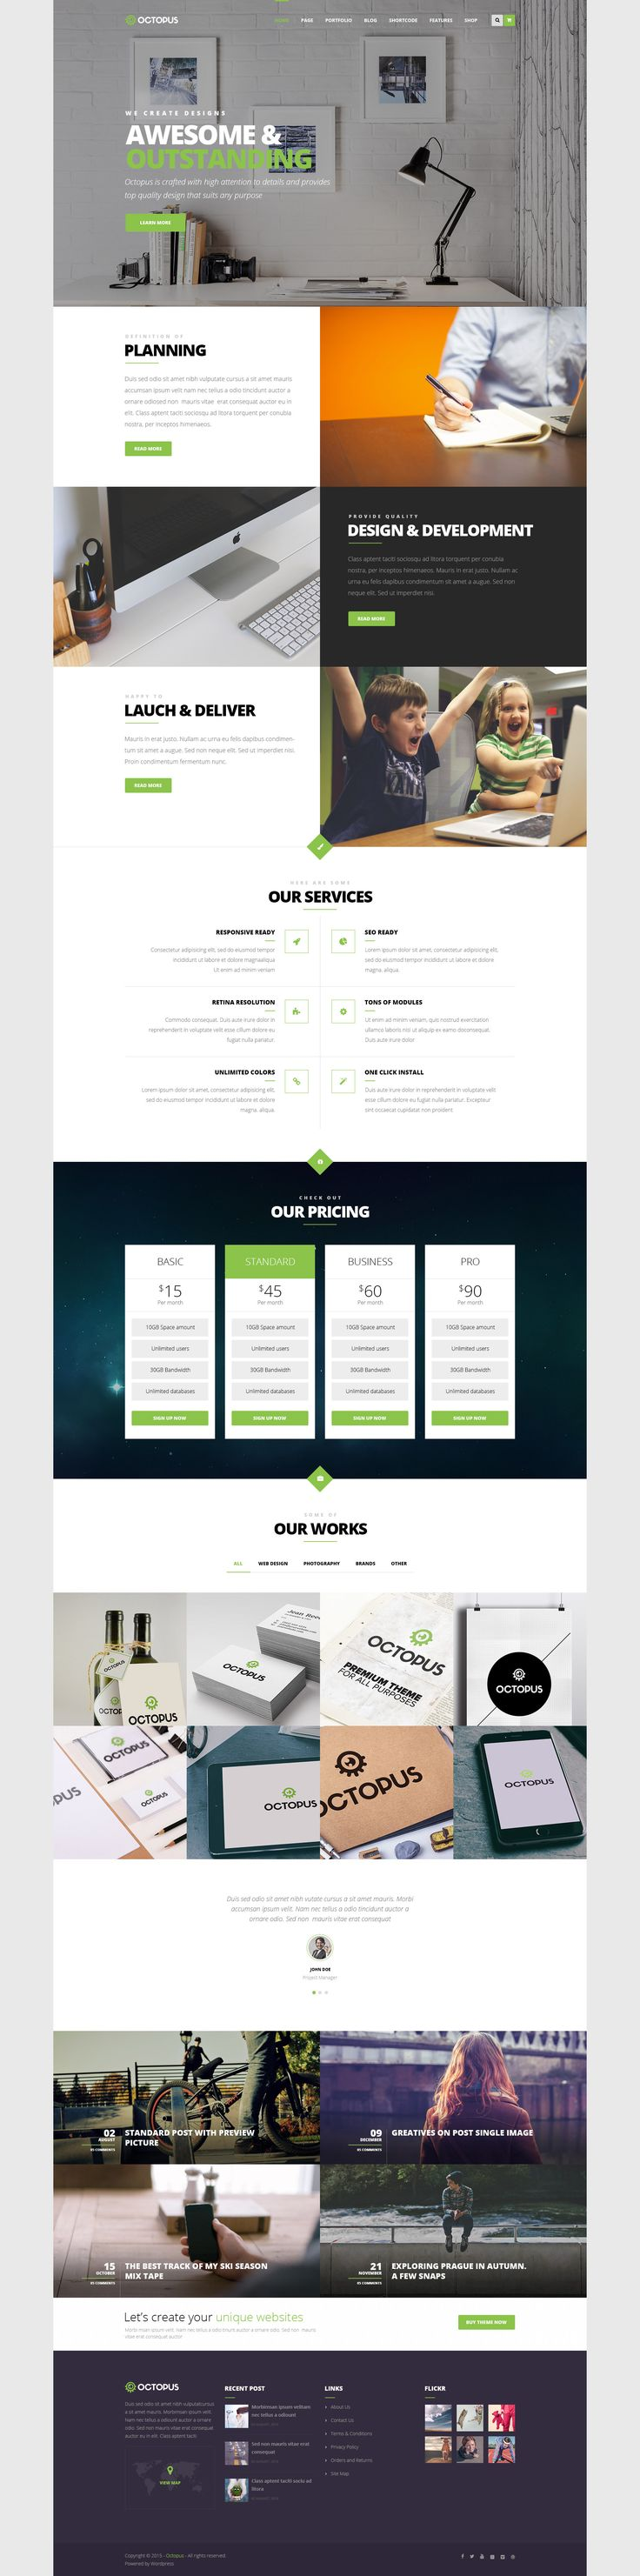 Octopus is a Modern Multipurpose Business WordPress #Theme suitable for any type of website. #Corporate #WP